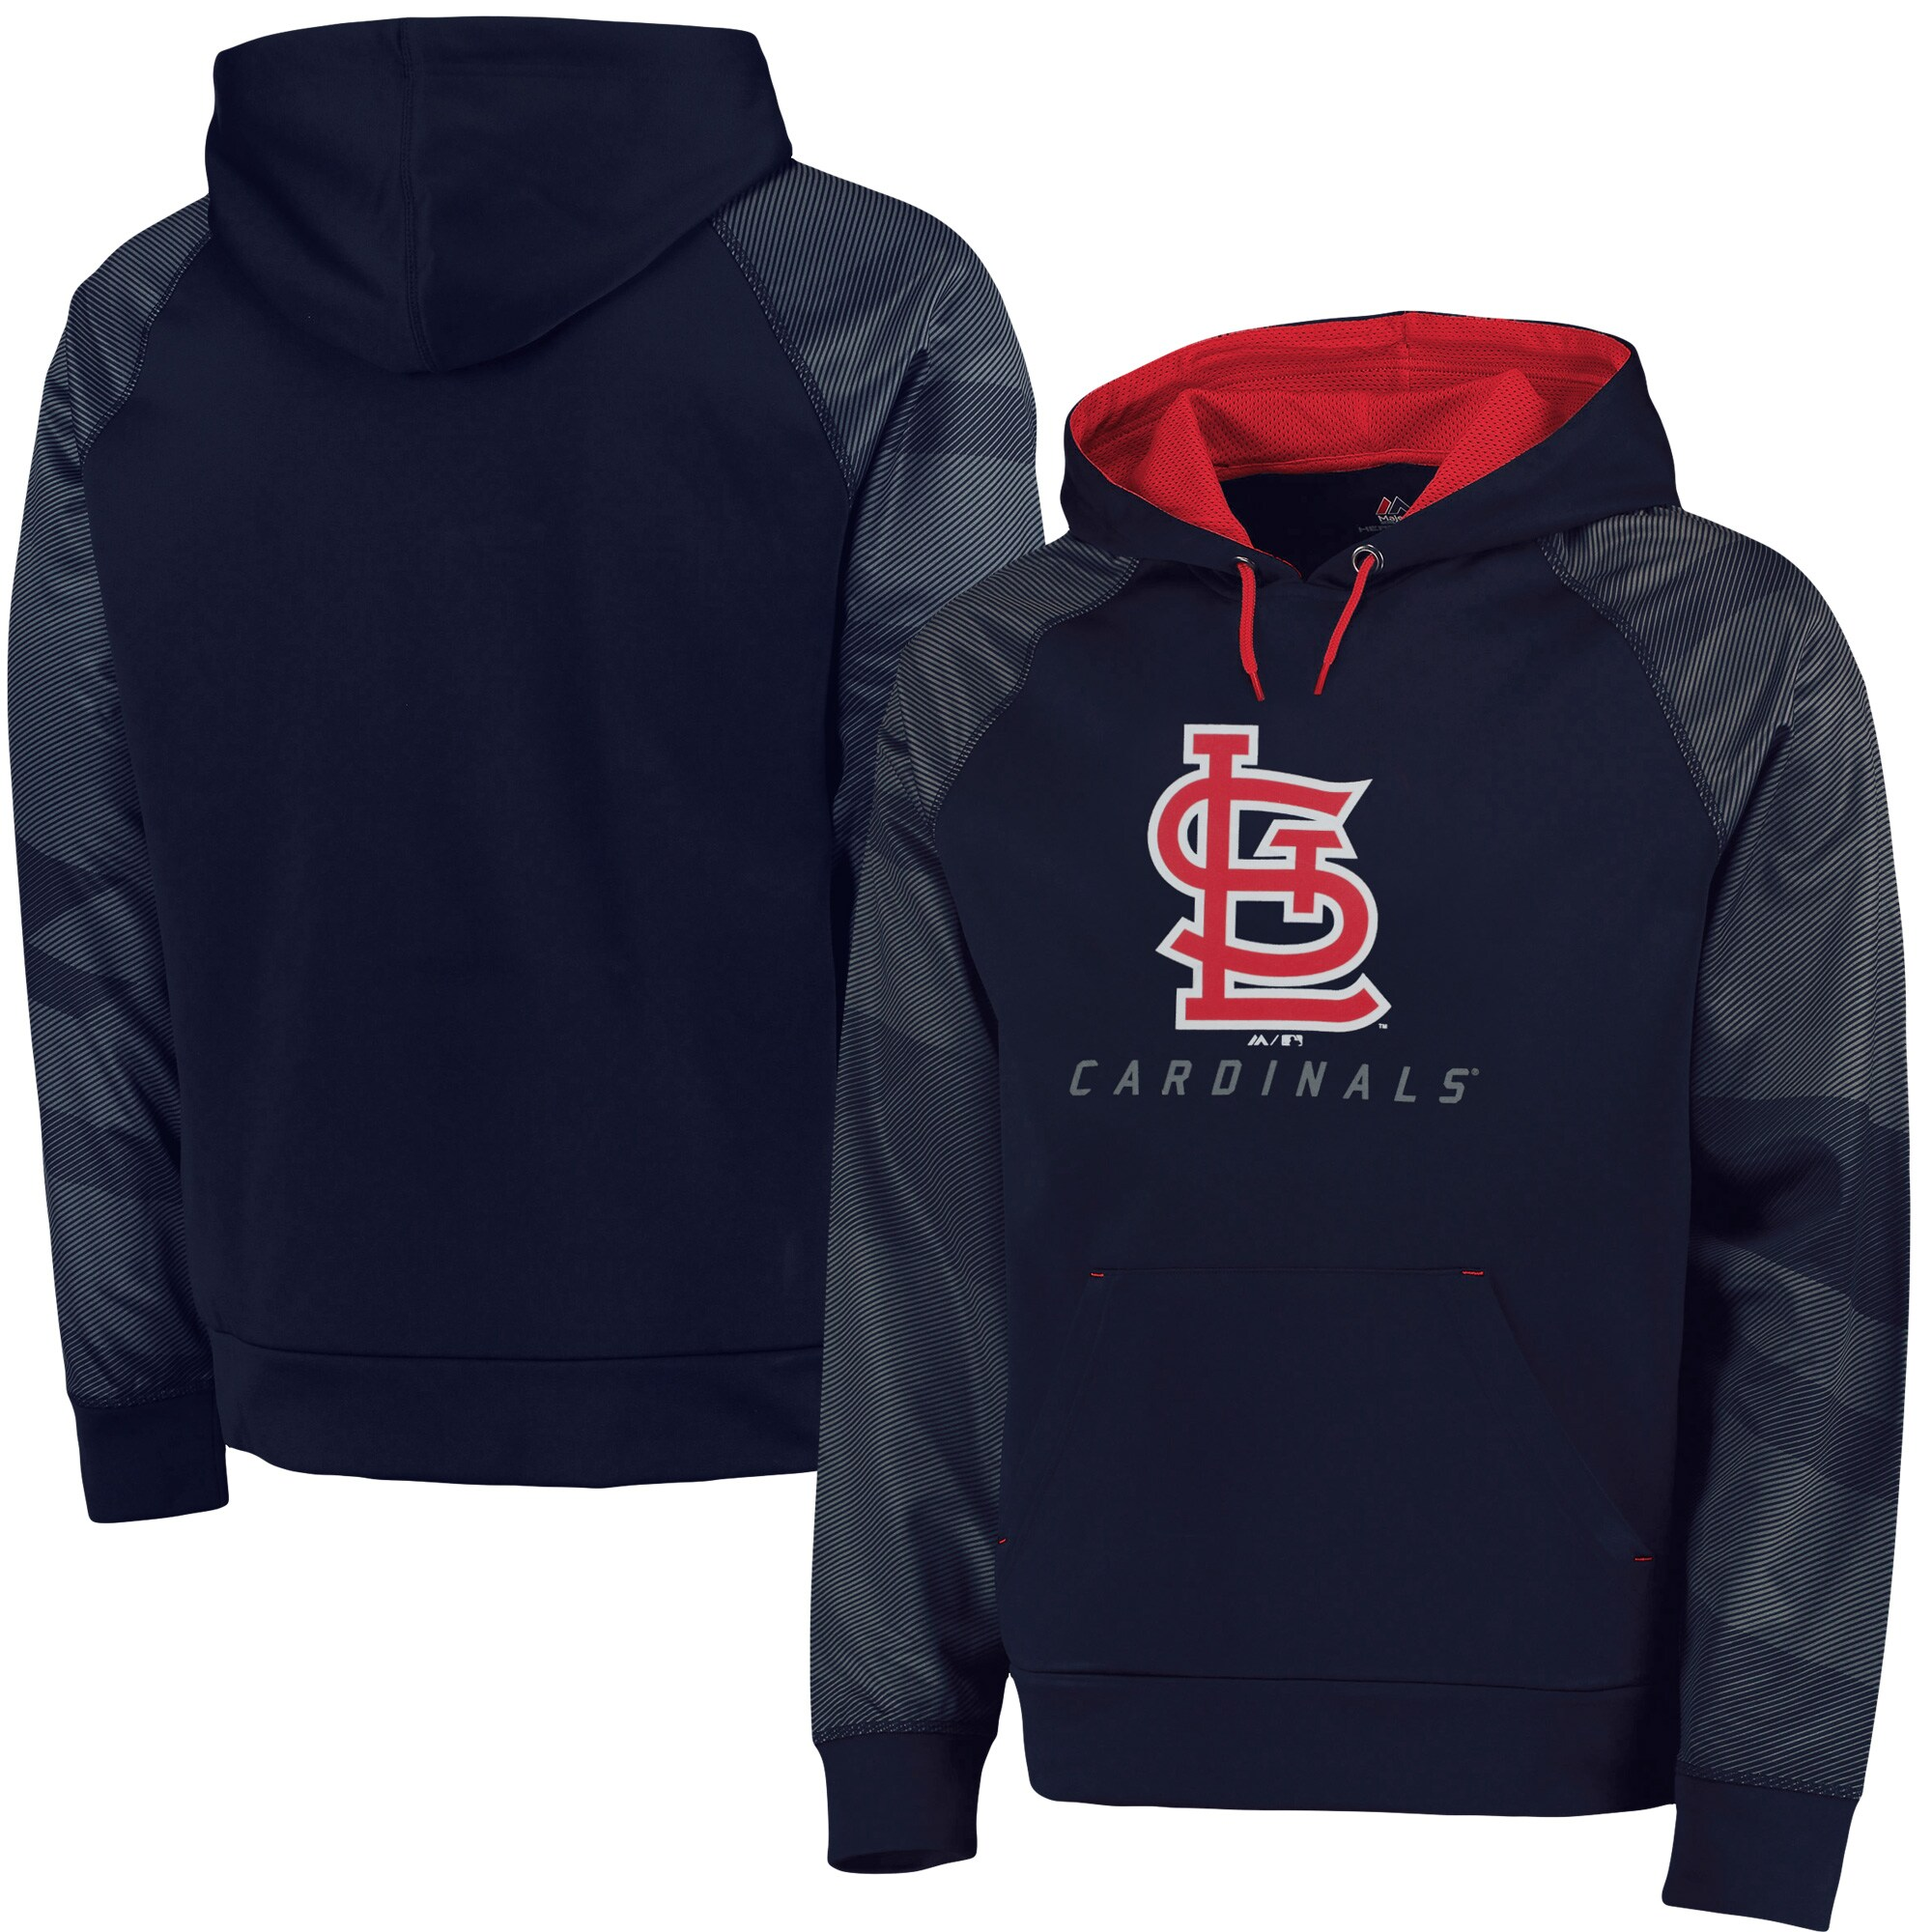 St. Louis Cardinals Majestic Big & Tall New Armour Performance Hoodie - Navy